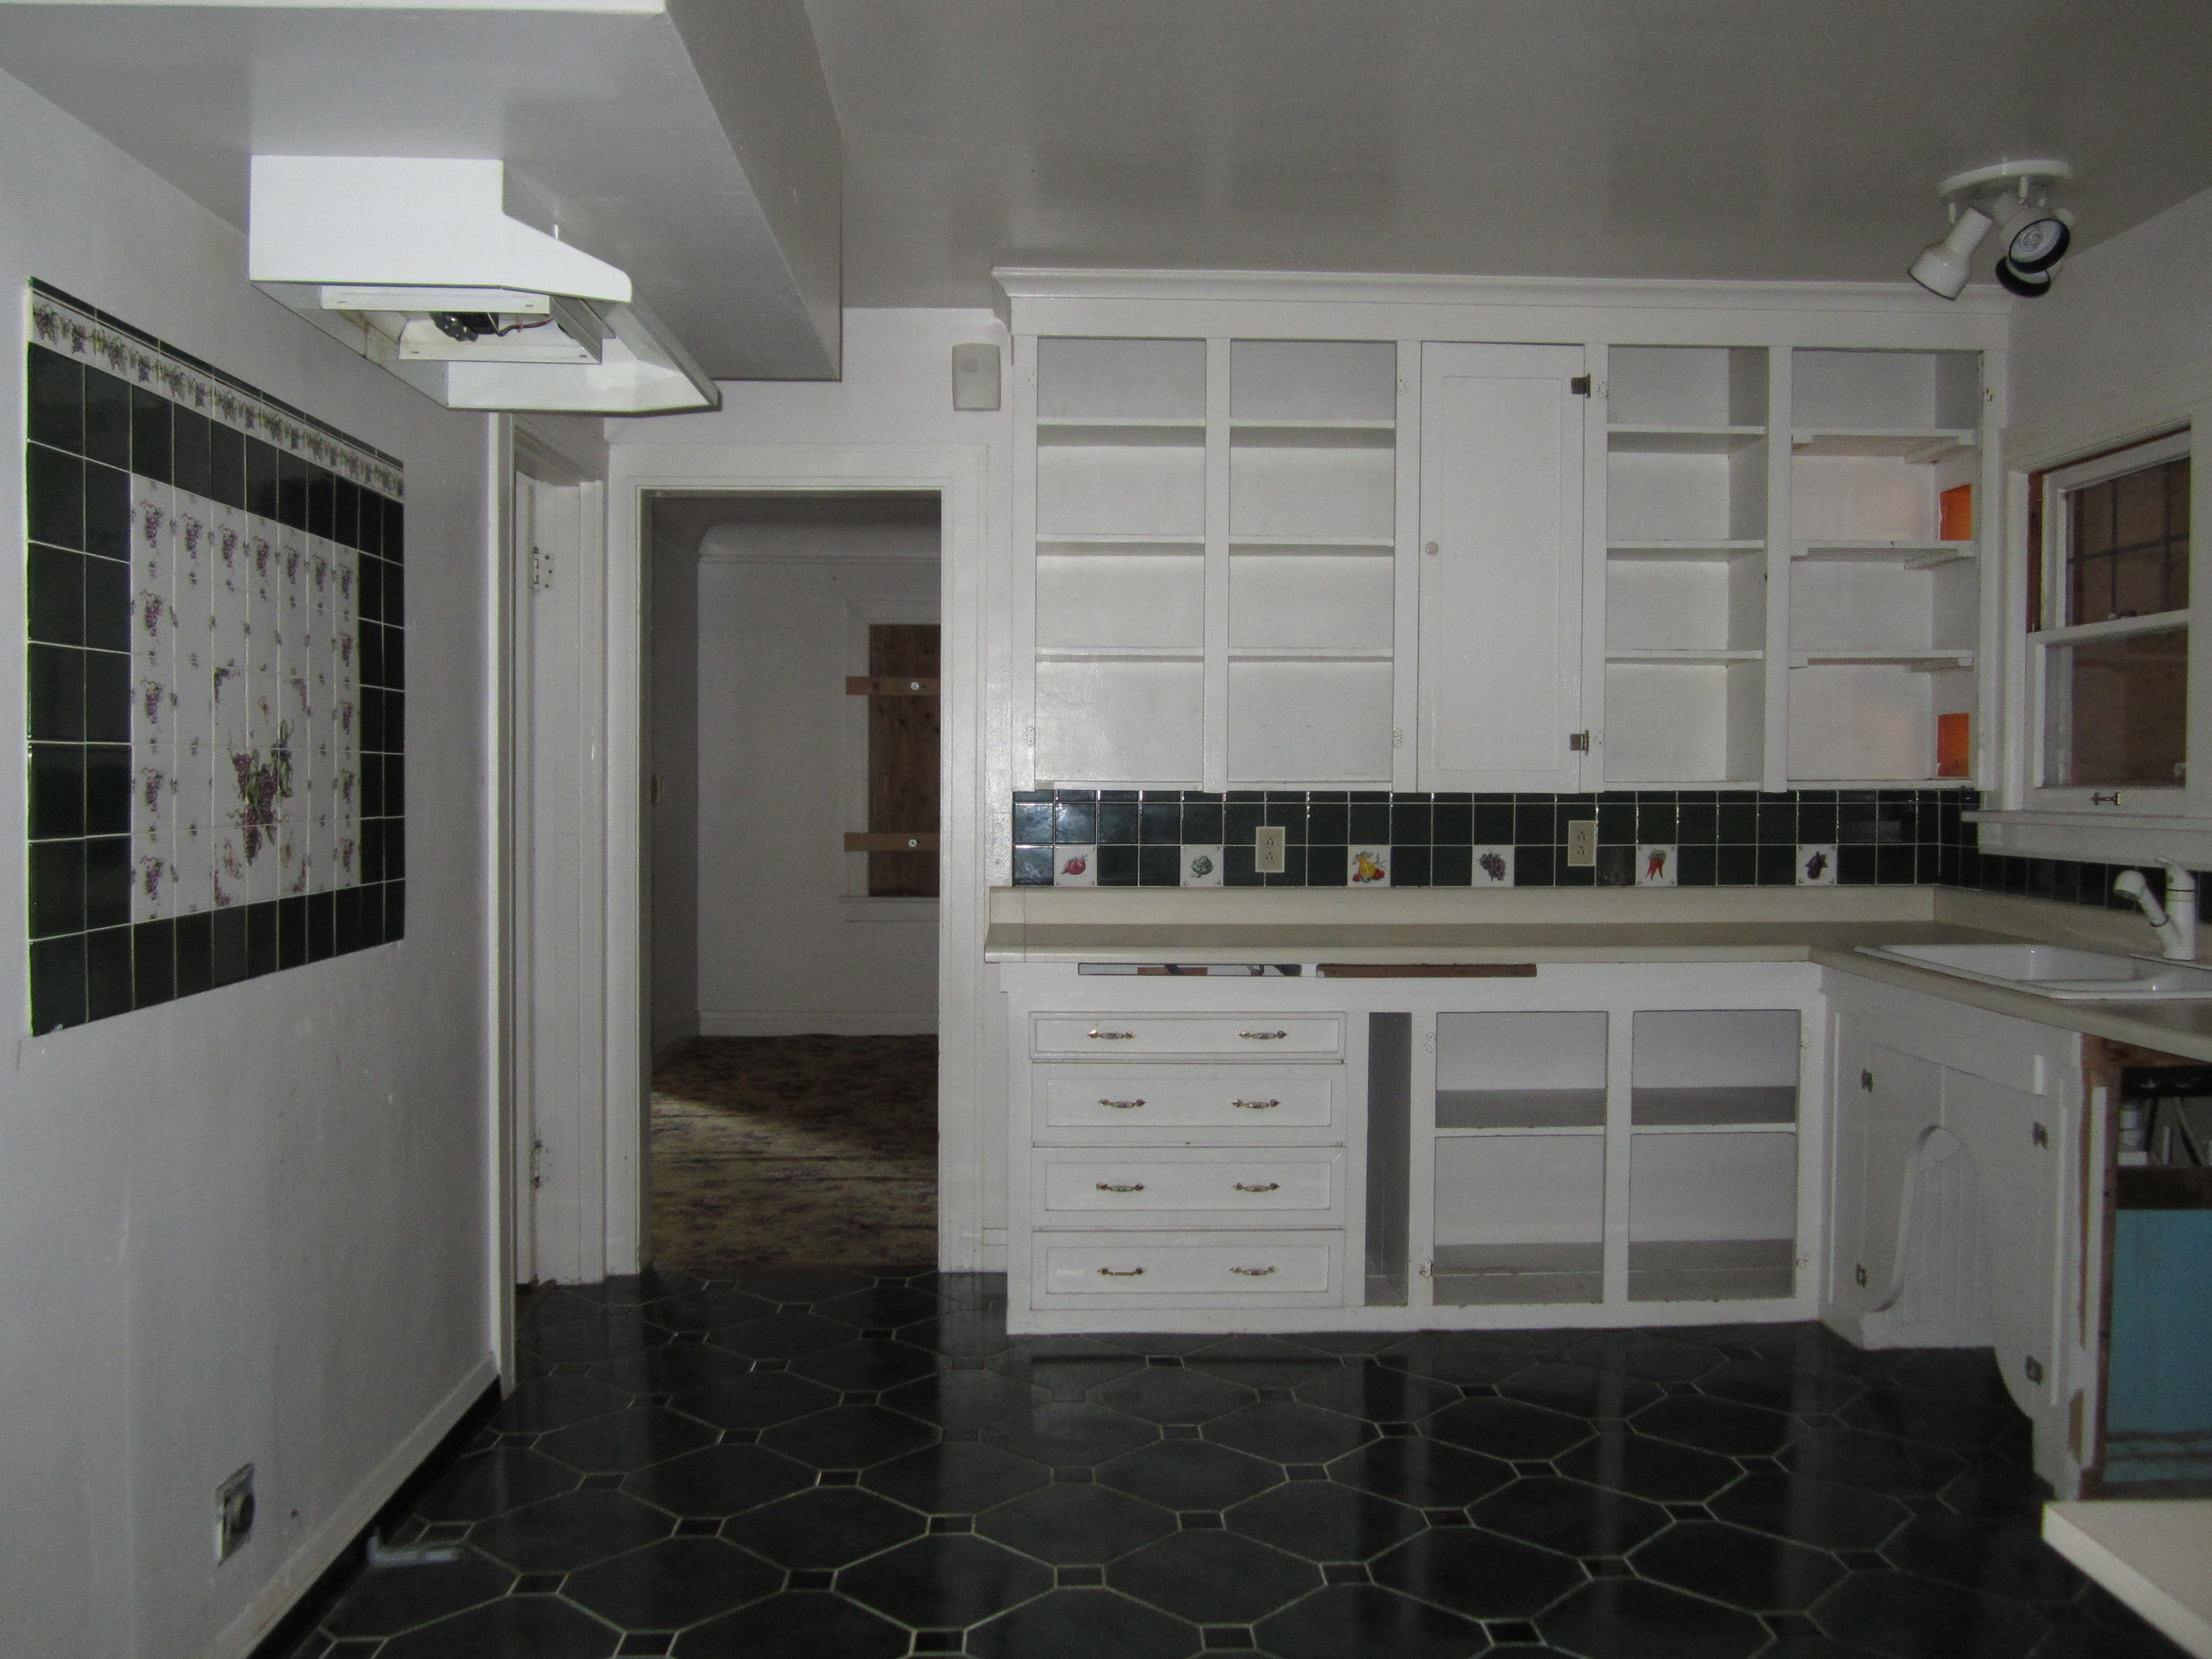 561-869535 - Kitchen 2.JPG